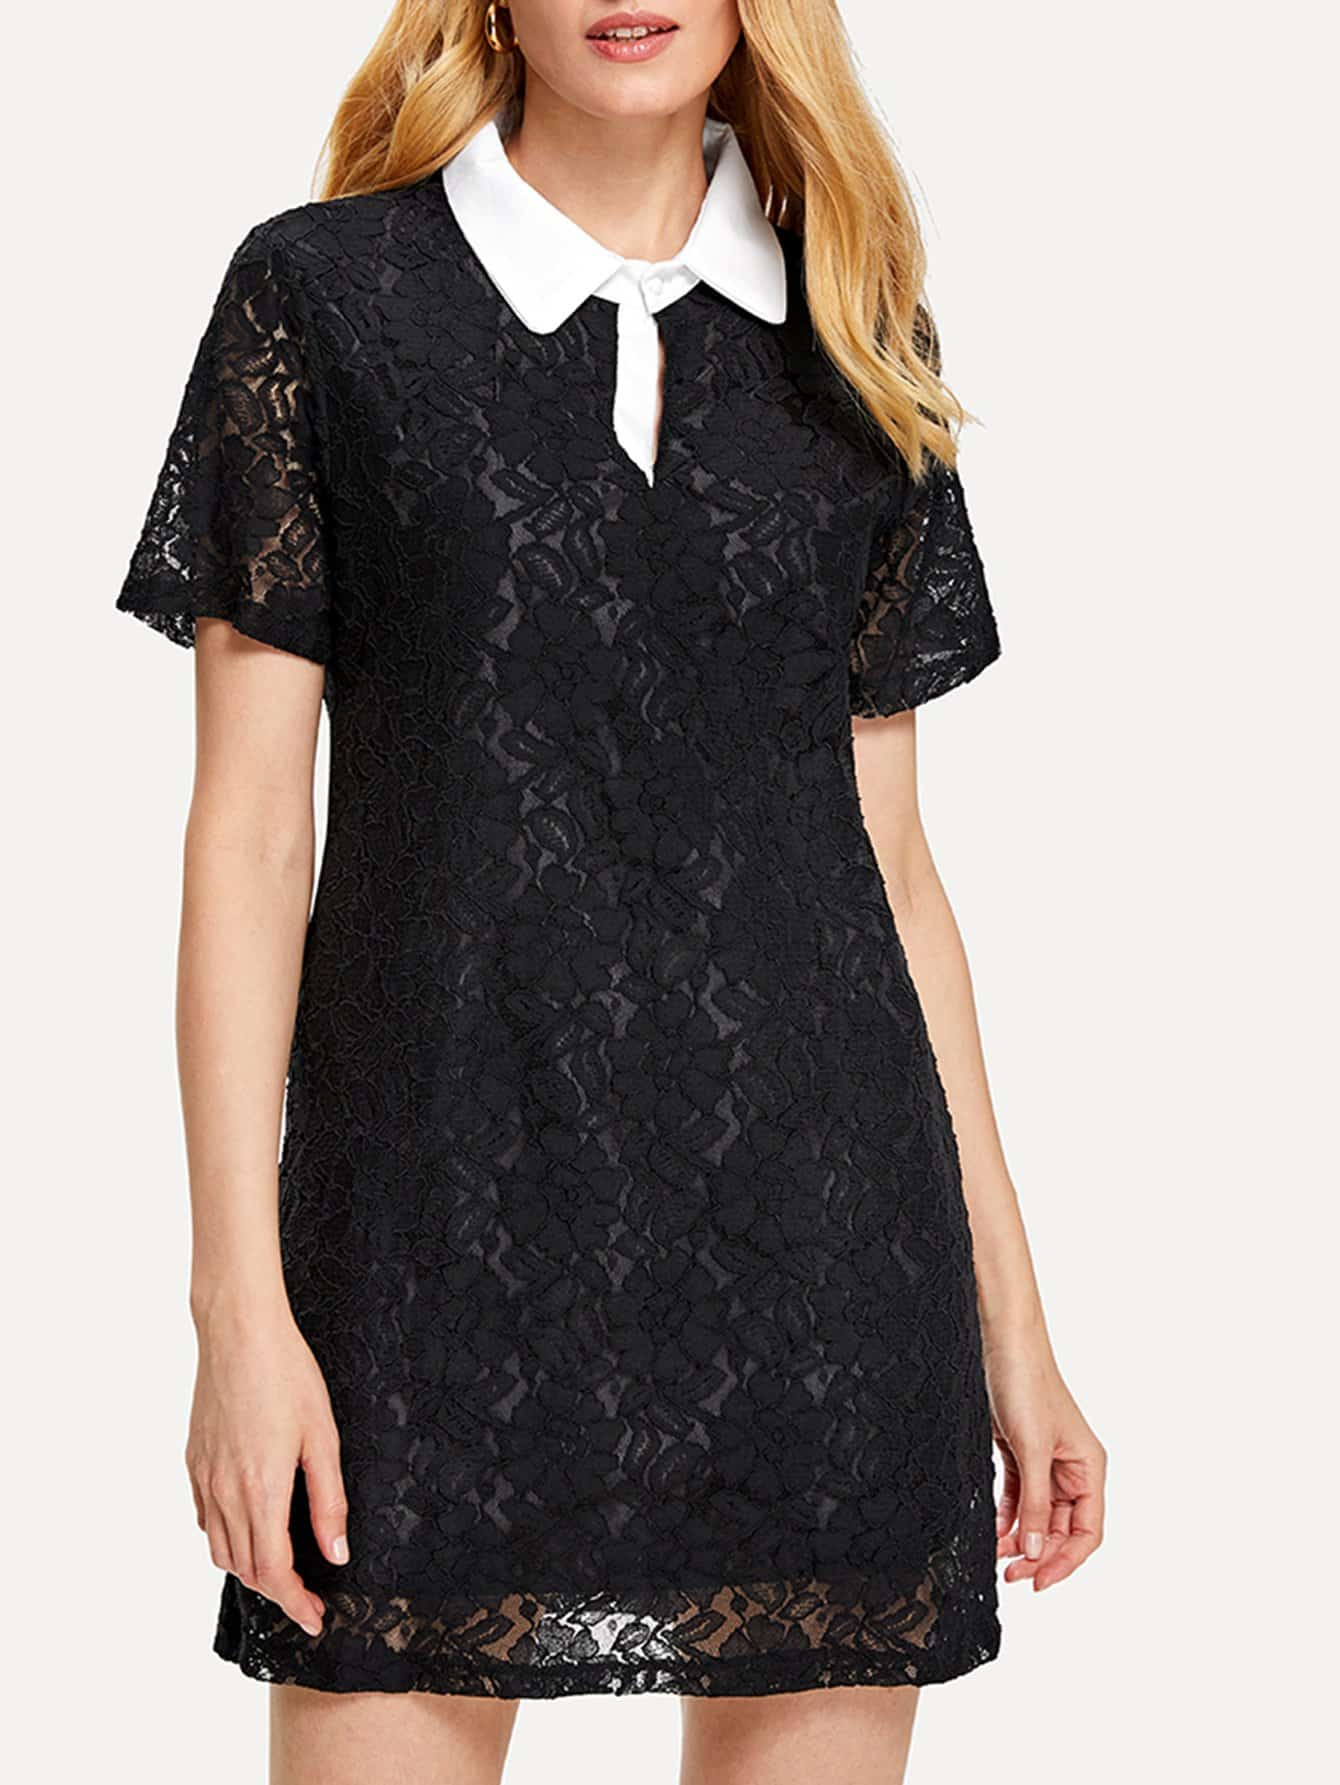 Contrast Collar Lace Dress contrast collar foldover front dress